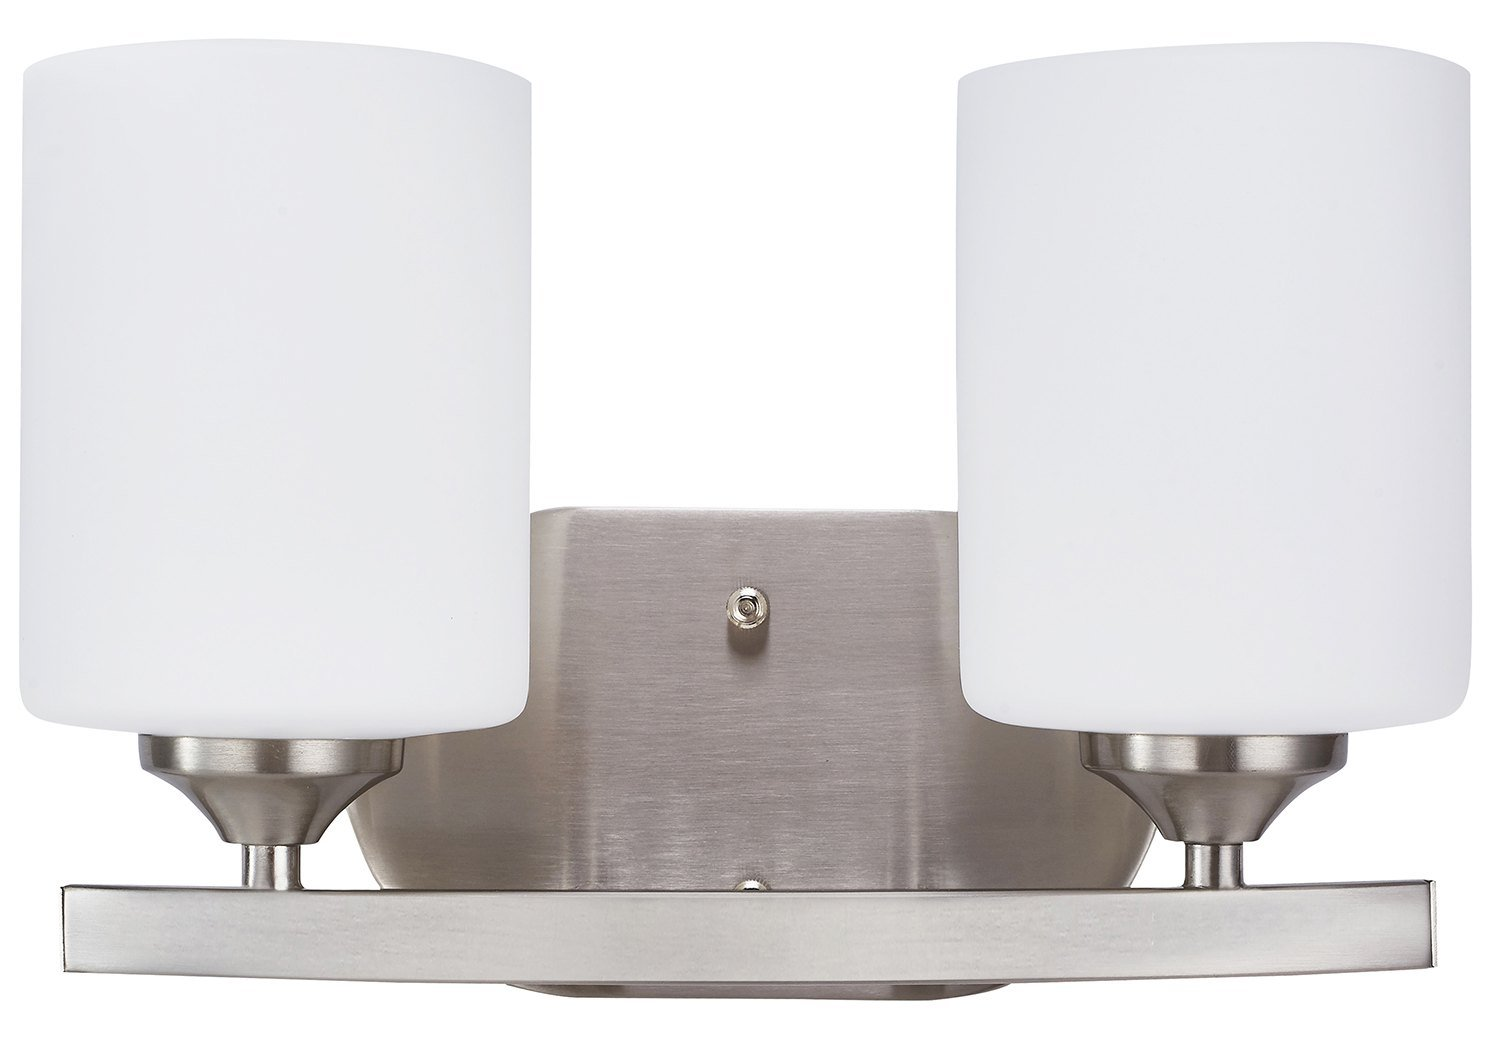 Sunnyfair 2-Light Bathroom Light Fixtures Two Bulb Bath Over Vanity Lights Above Mirror Wall Mount Lighting with Frosted Glass Shade Brushed Nicke, UL Listed